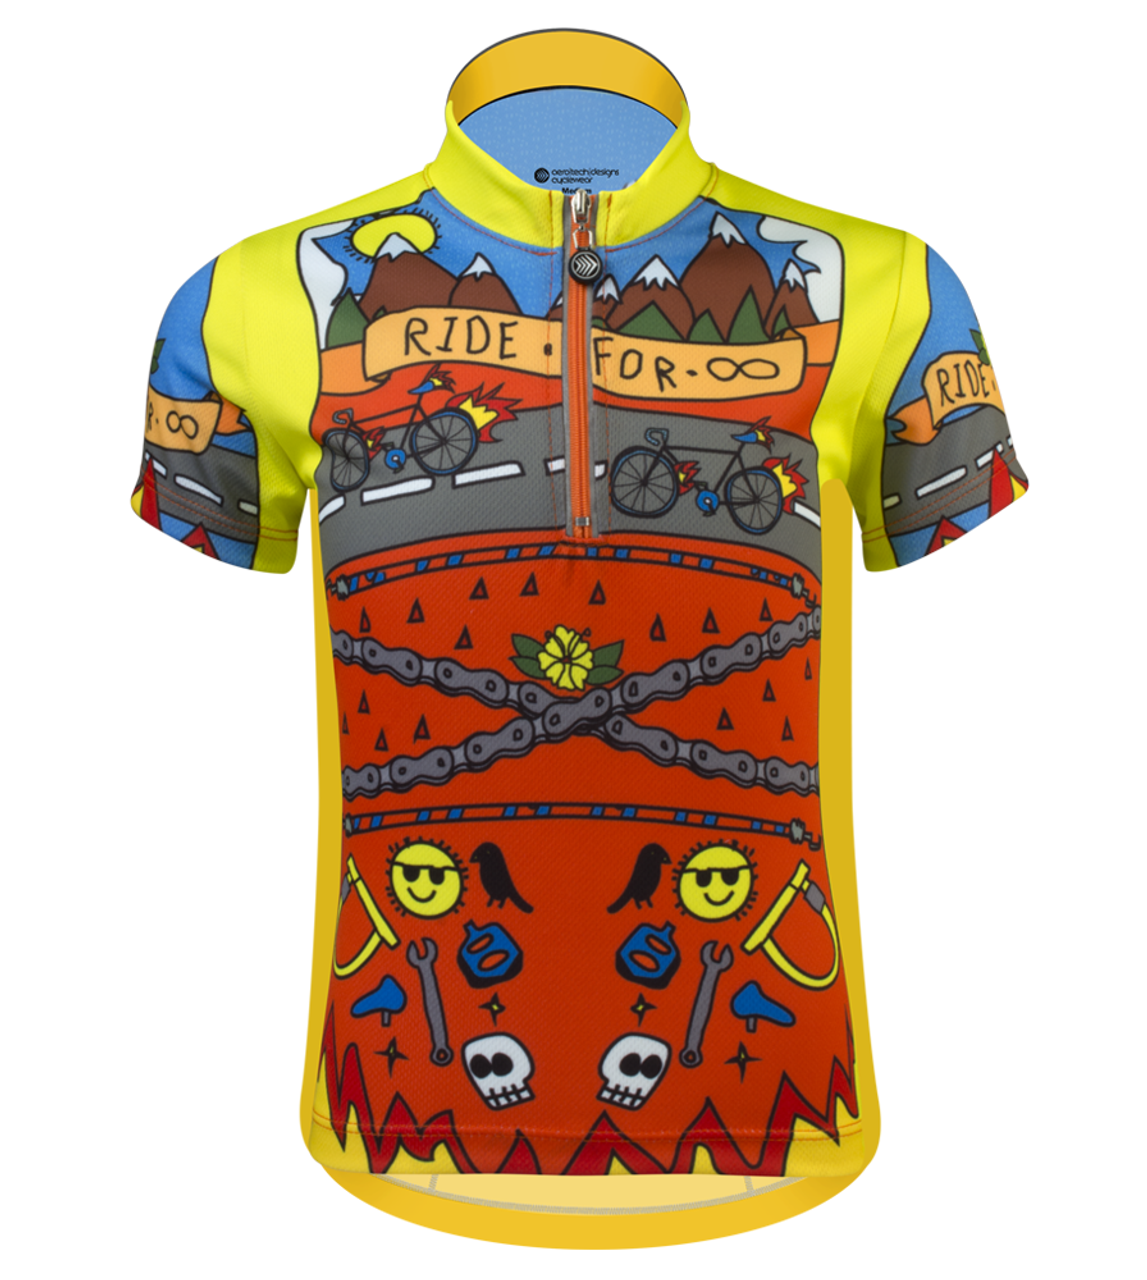 Aero Tech Youth Team Jersey Ride For Infinity Printed Cycling - Two cycling kits worst designs ever